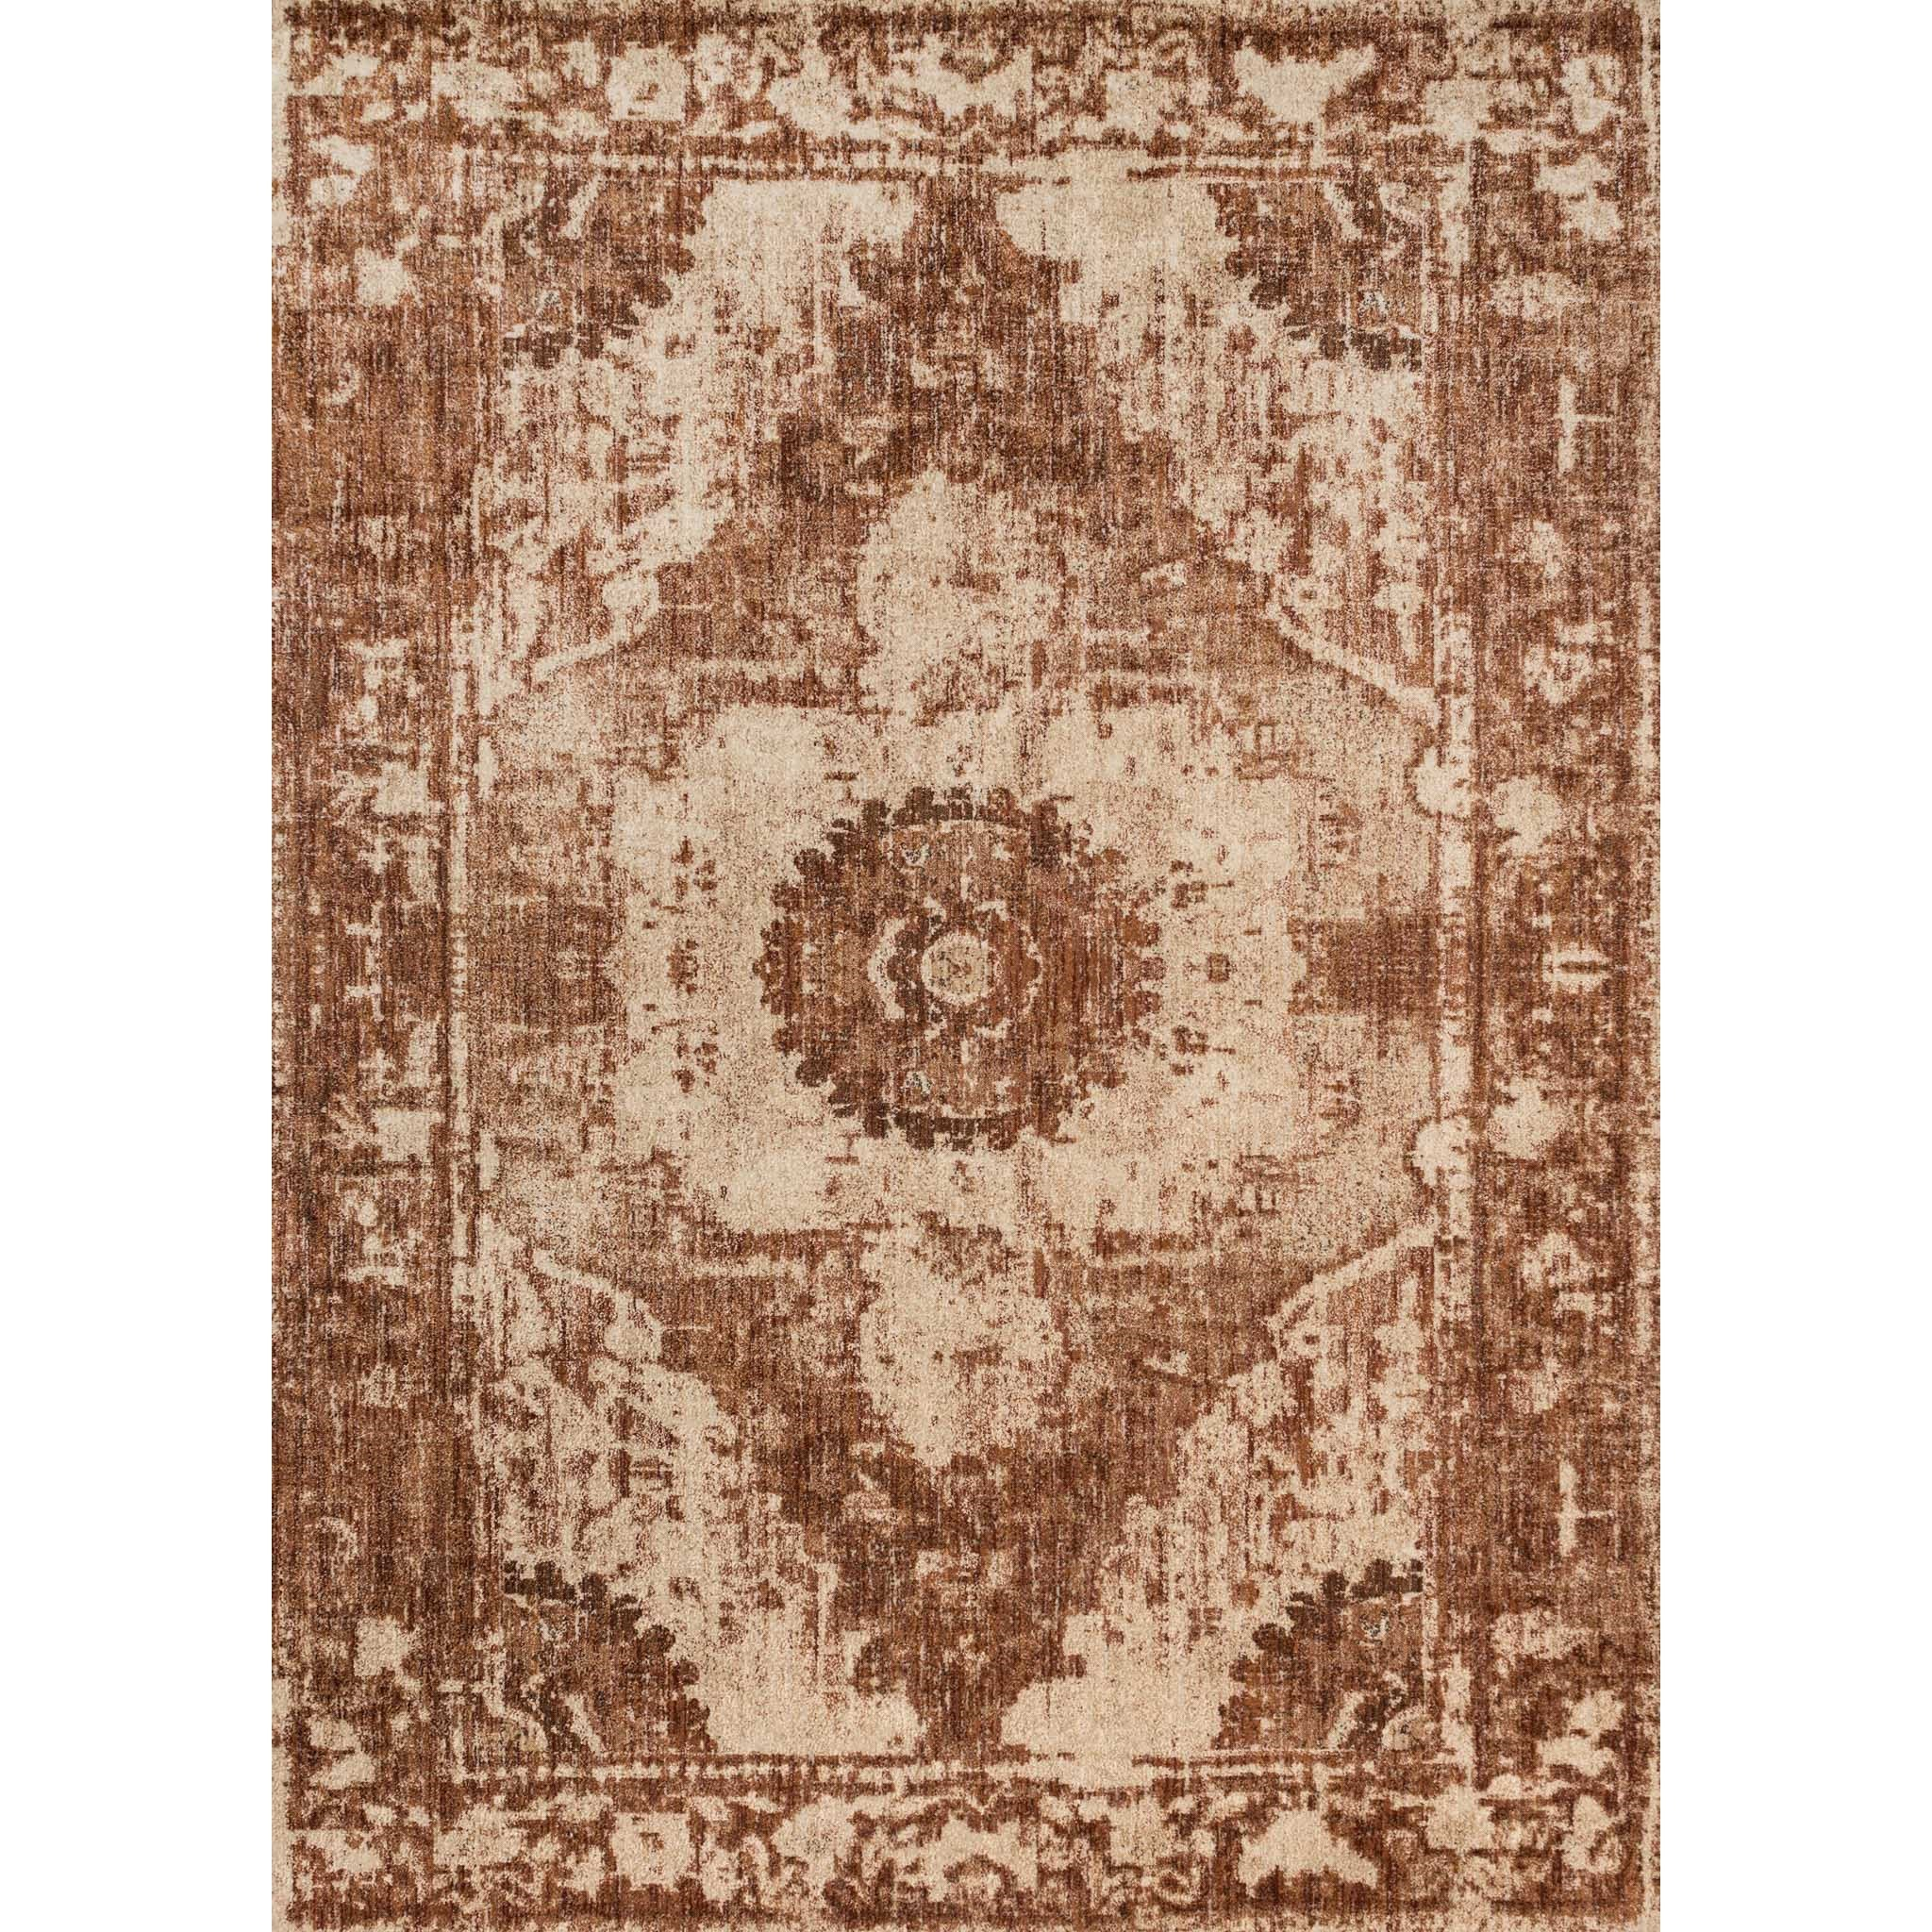 "Kivi 6' 7"" X 9' 2"" Rectangle Rug by Magnolia Home by Joanna Gaines for Loloi at Belfort Furniture"